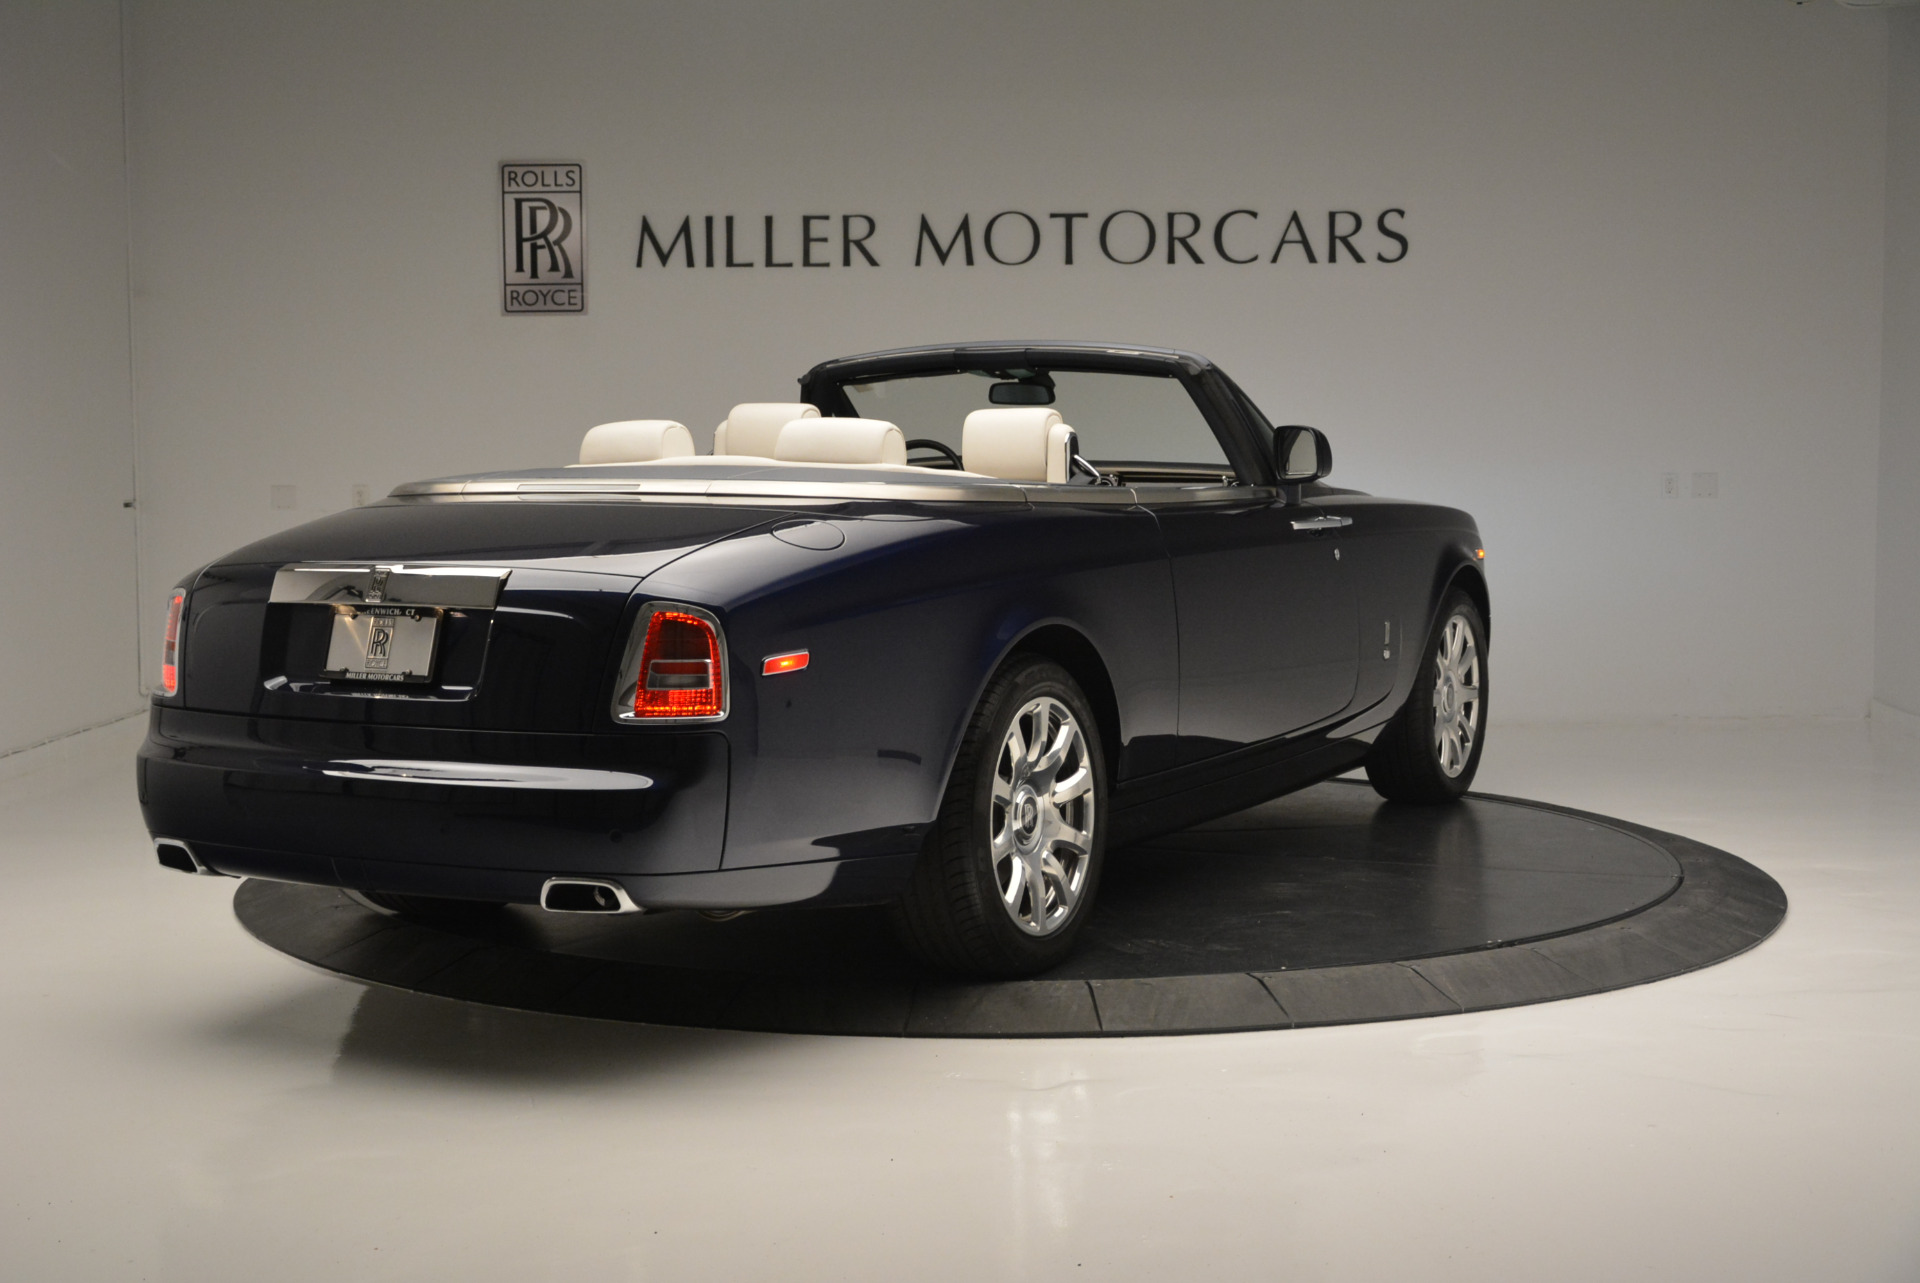 Used 2014 Rolls-Royce Phantom Drophead Coupe  For Sale In Westport, CT 2356_p5